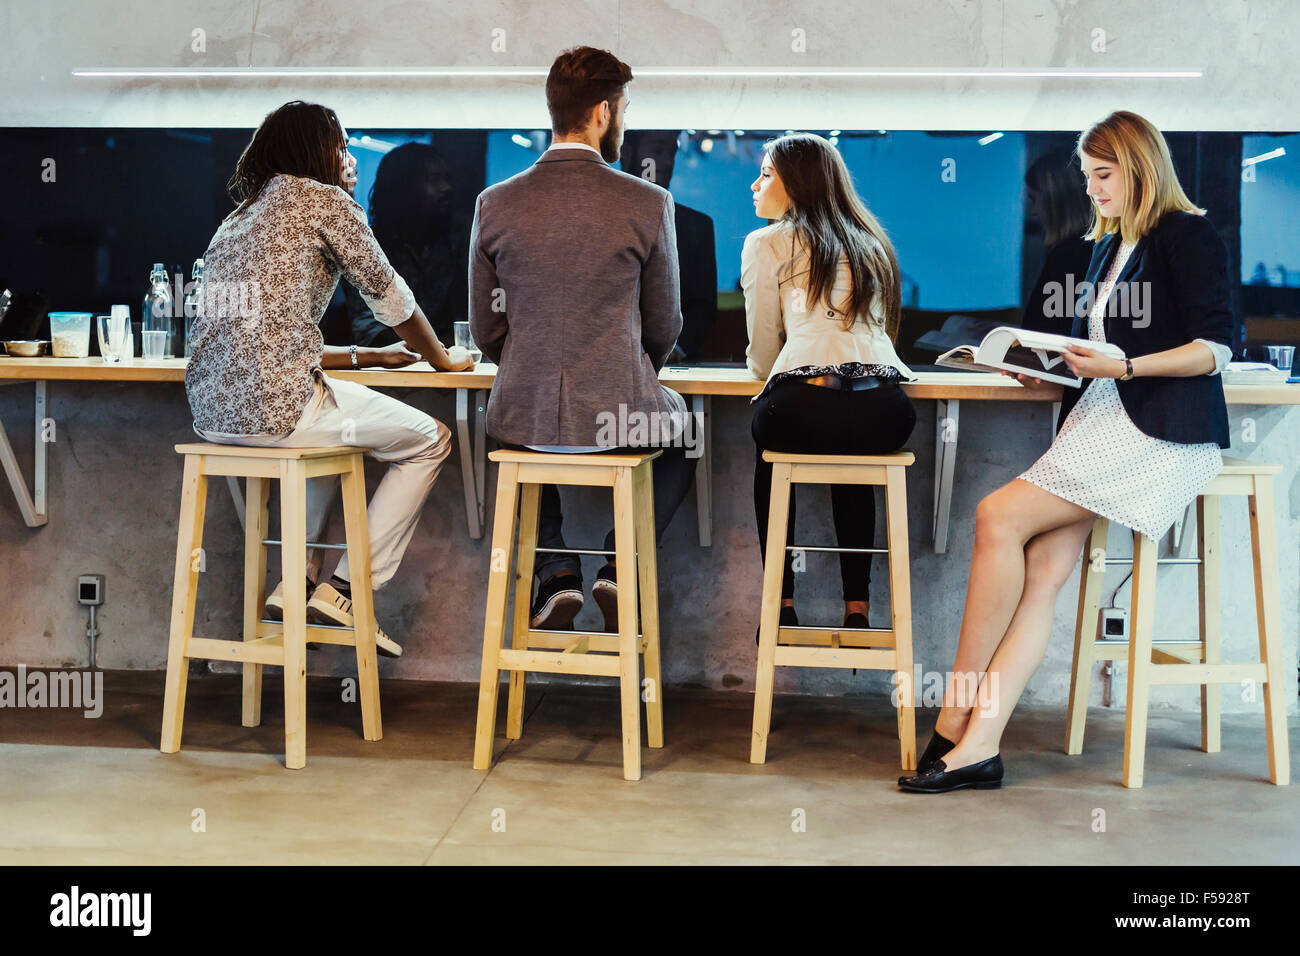 Business people having a break from work and conversing - Stock Image